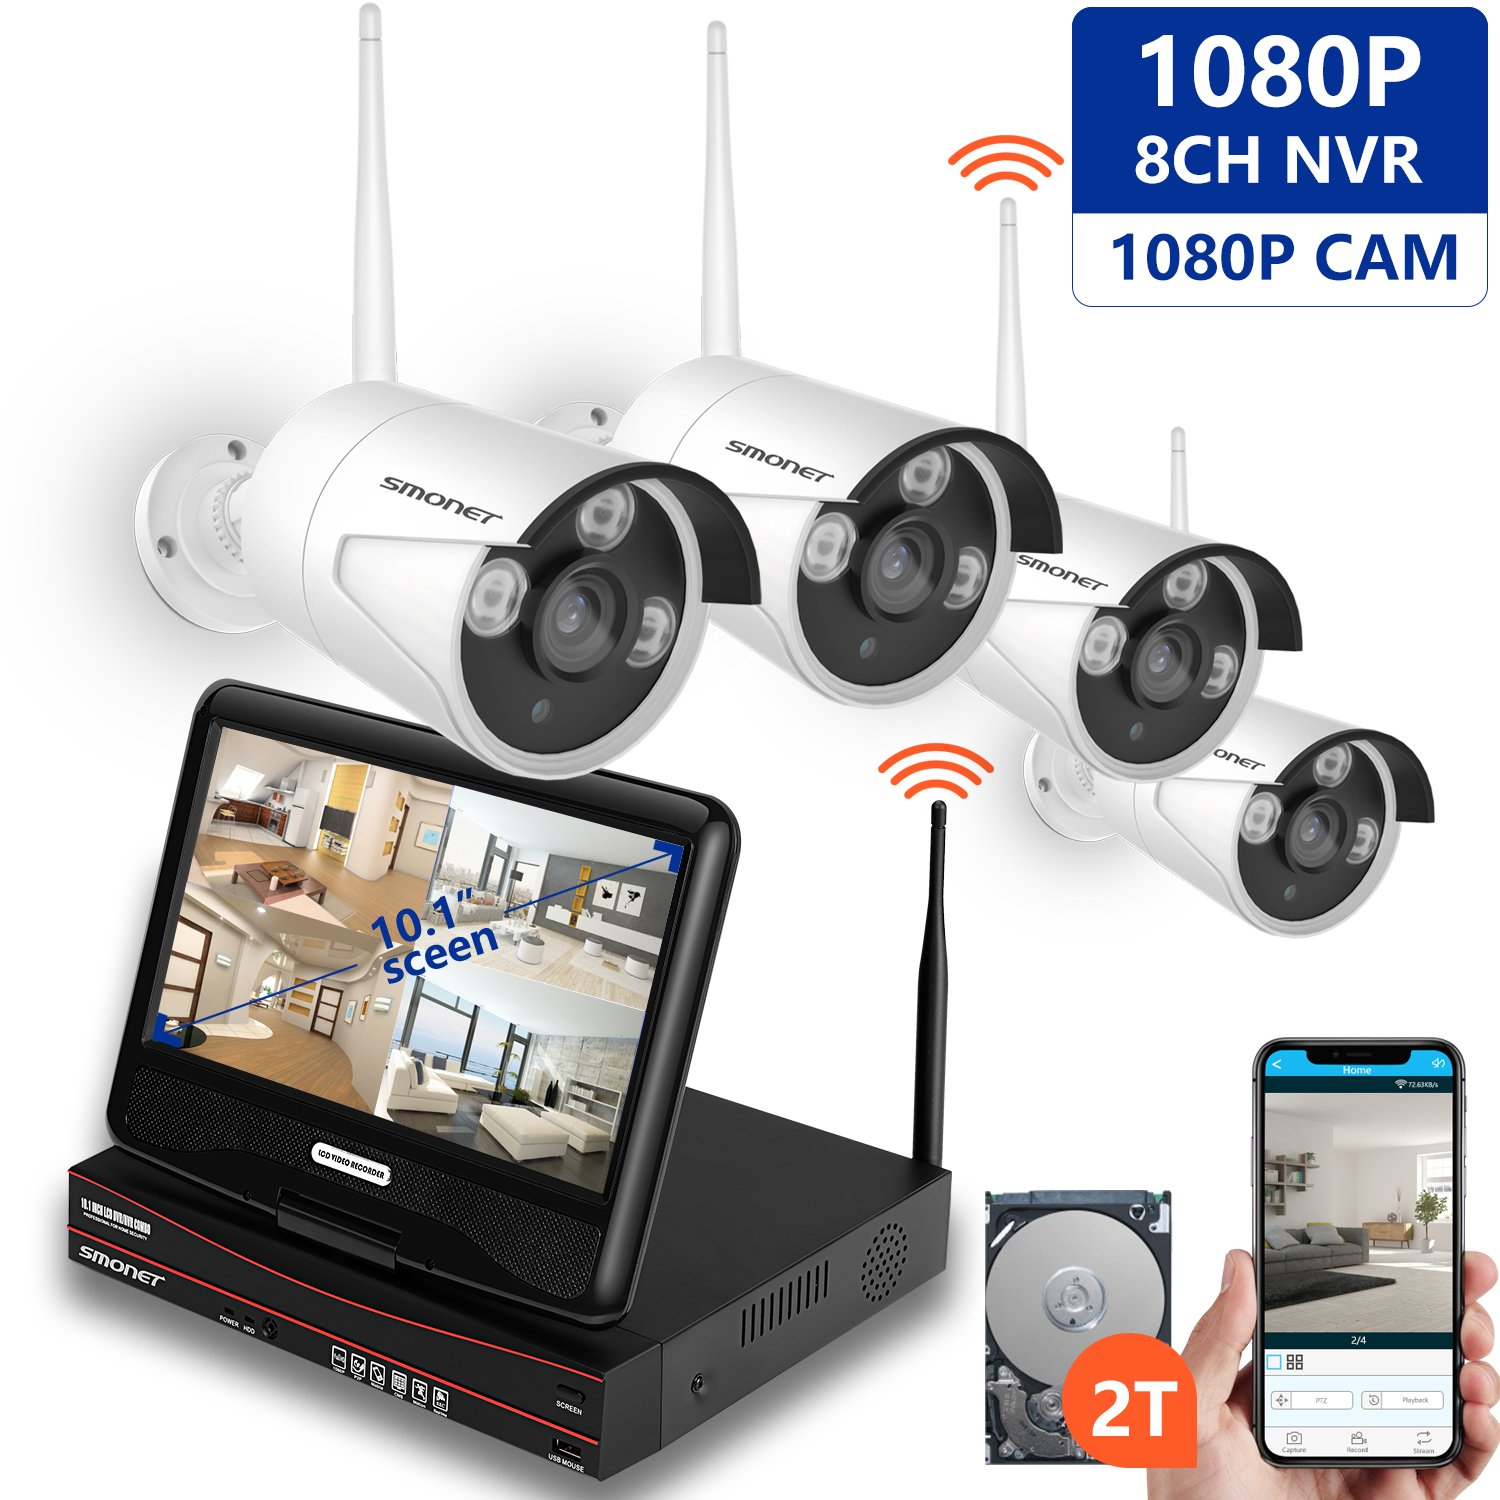 1080P Wireless Security Camera Systems,SMONET 8-Channel Video Security Systems(2TB Hard Drive,4pcs 1080P(2.0MP) Outdoor&Indoor Wireless IP Cameras,with 10.1inches Monitor,P2P,Easy Remote View,Free APP by SMONET